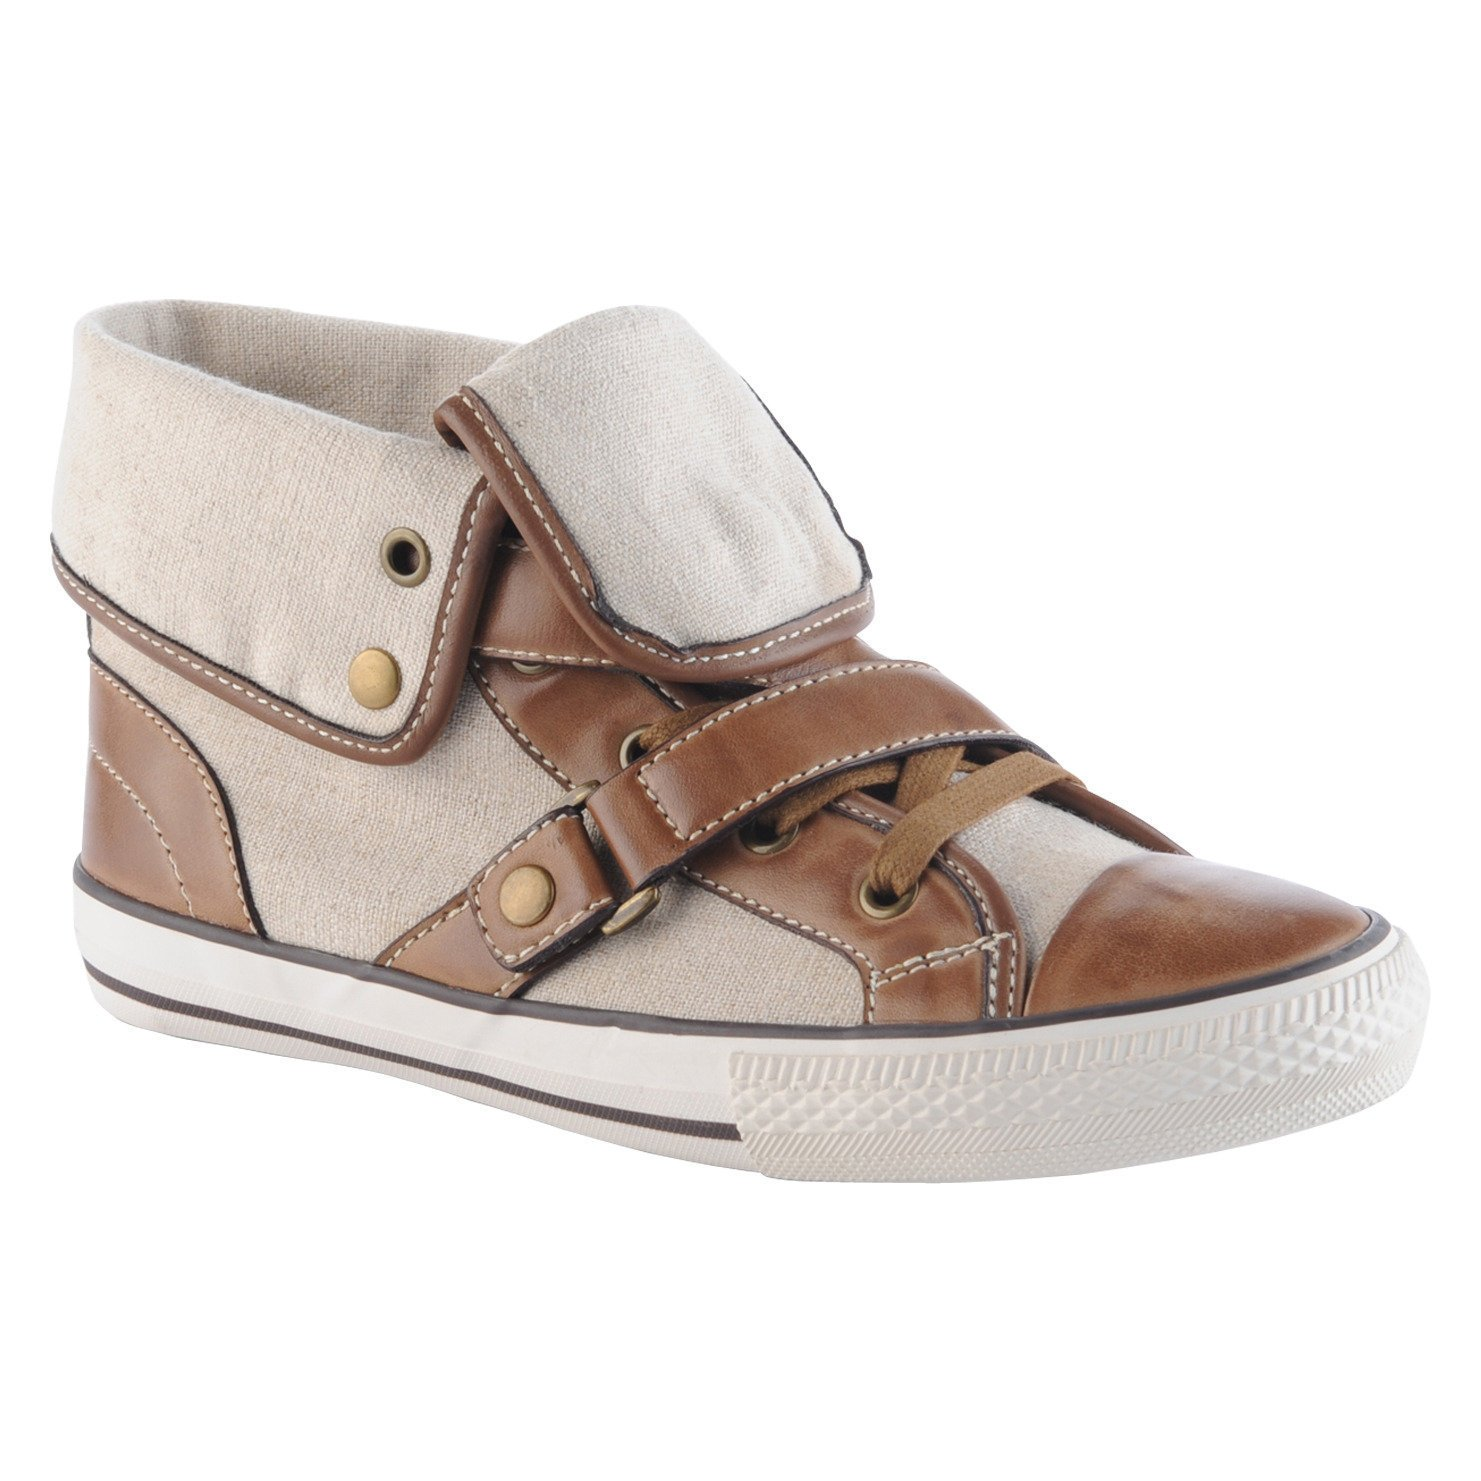 PYNE - women's sneakers shoes for sale at ALDO Shoes.